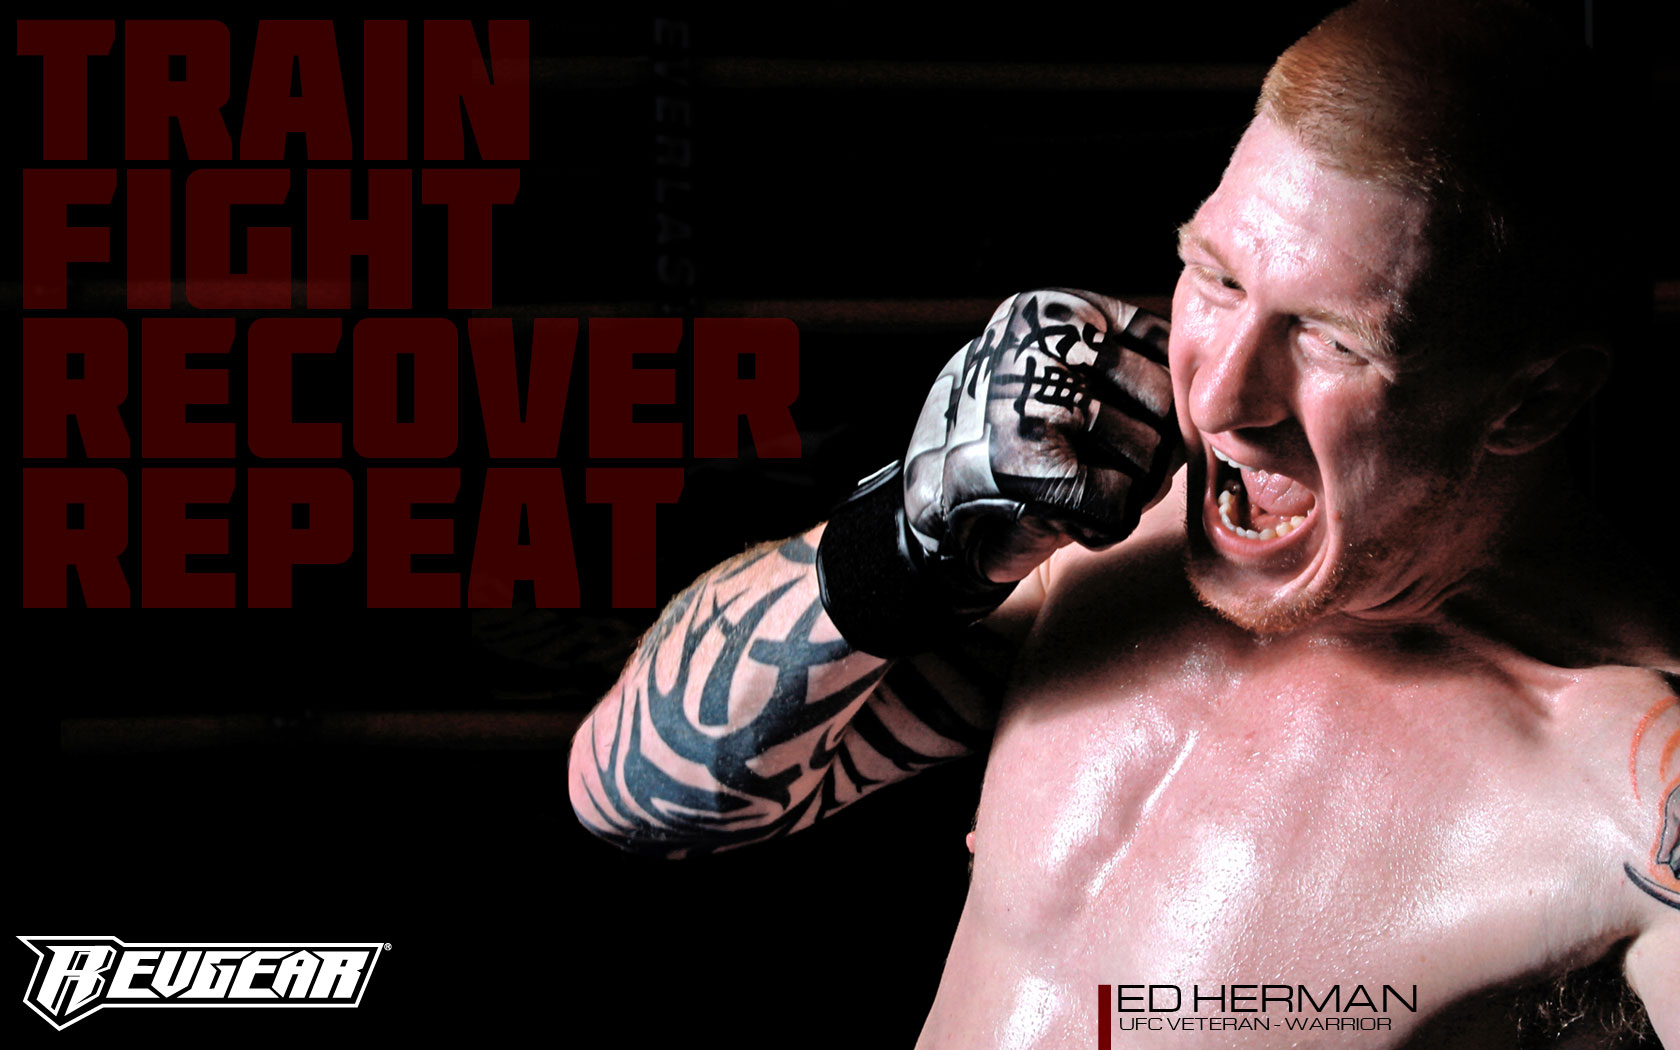 Top 5 Best Mma Gloves For Heavy Bag Work A Fighters Guide